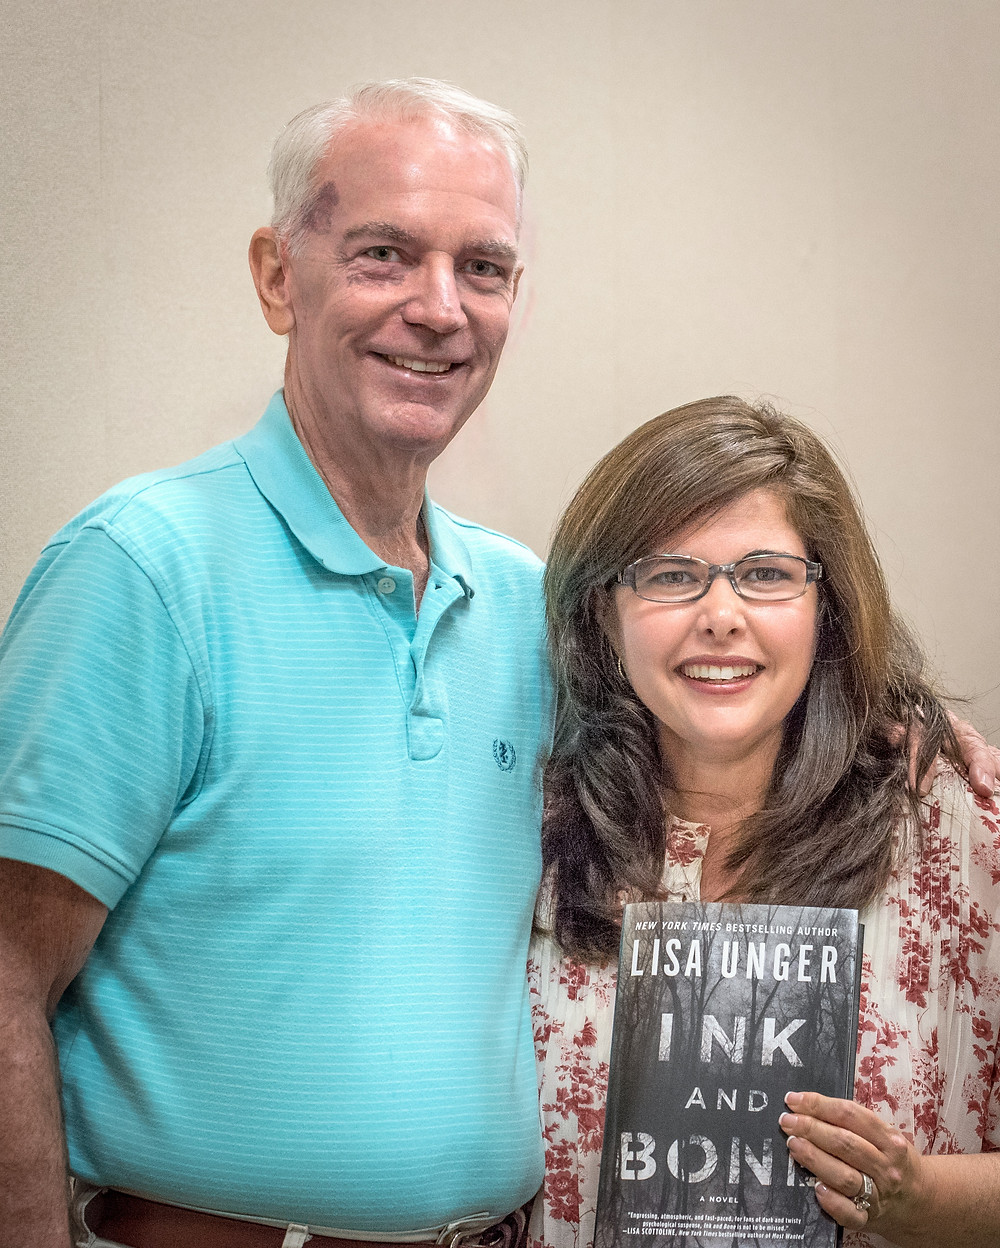 Lisa Unger, standing with SFWr President Jerry Keane, displays her lasts novel.